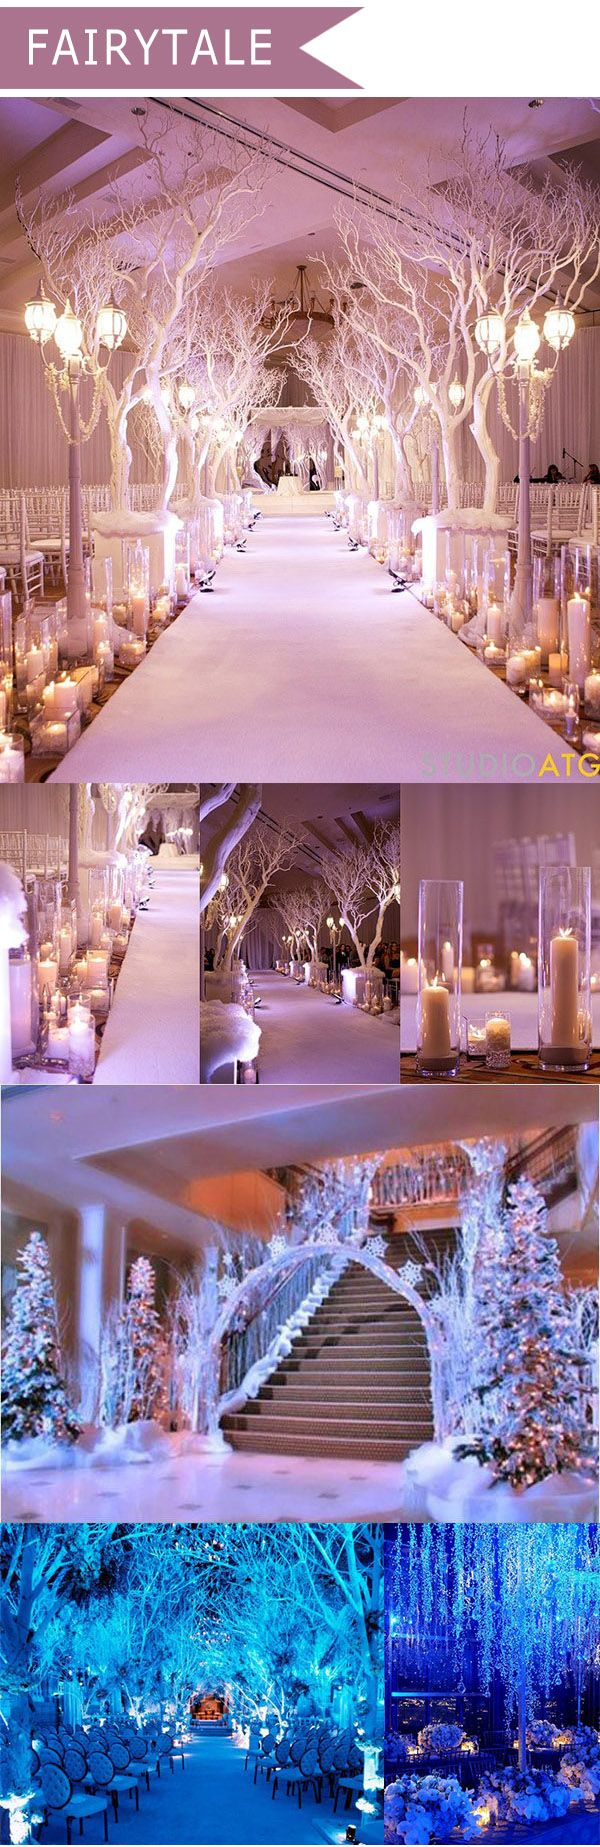 Best 25 prom decor ideas on pinterest prom themes diy wedding best 25 prom decor ideas on pinterest prom themes diy wedding centerpieces and diy 20s decorations junglespirit